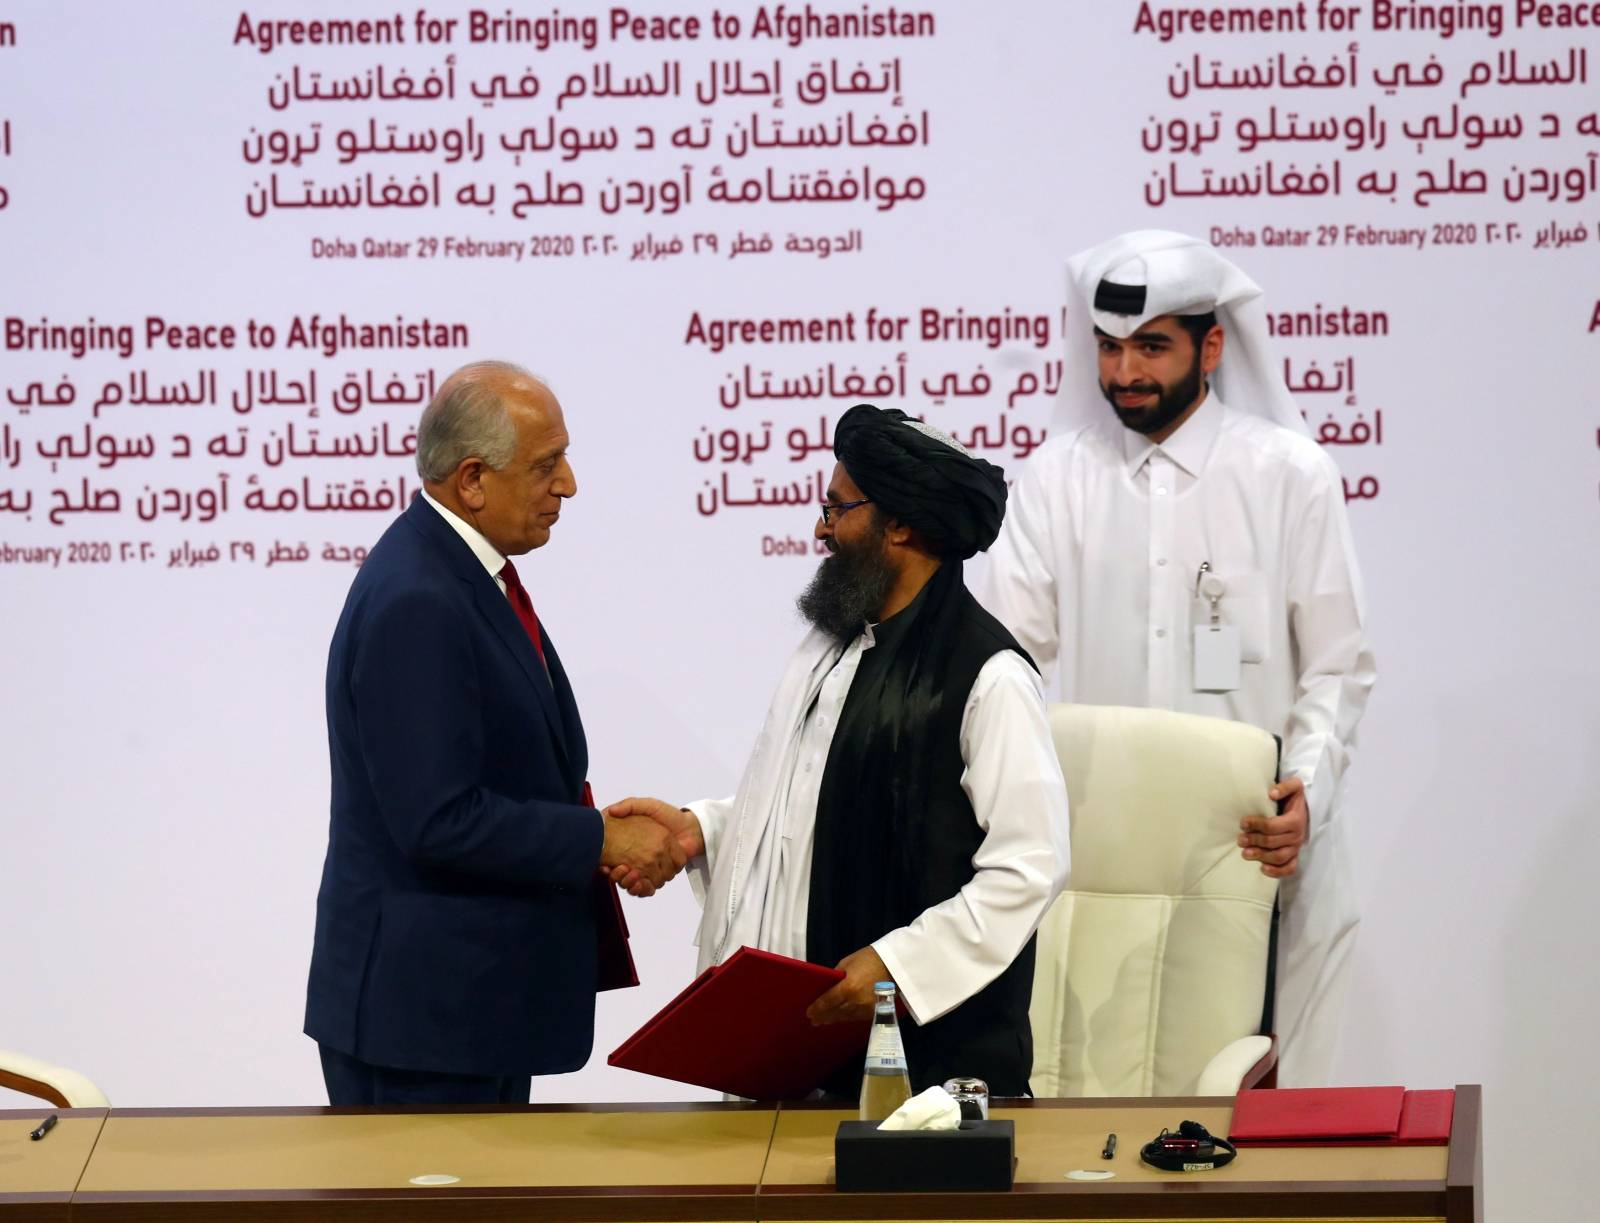 Mullah Abdul Ghani Baradar, the leader of the Taliban delegation, and Zalmay Khalilzad, U.S. envoy for peace in Afghanistan, shake hands after signing agreement at ceremony between members of Afghanistan's Taliban and the U.S. in Doha